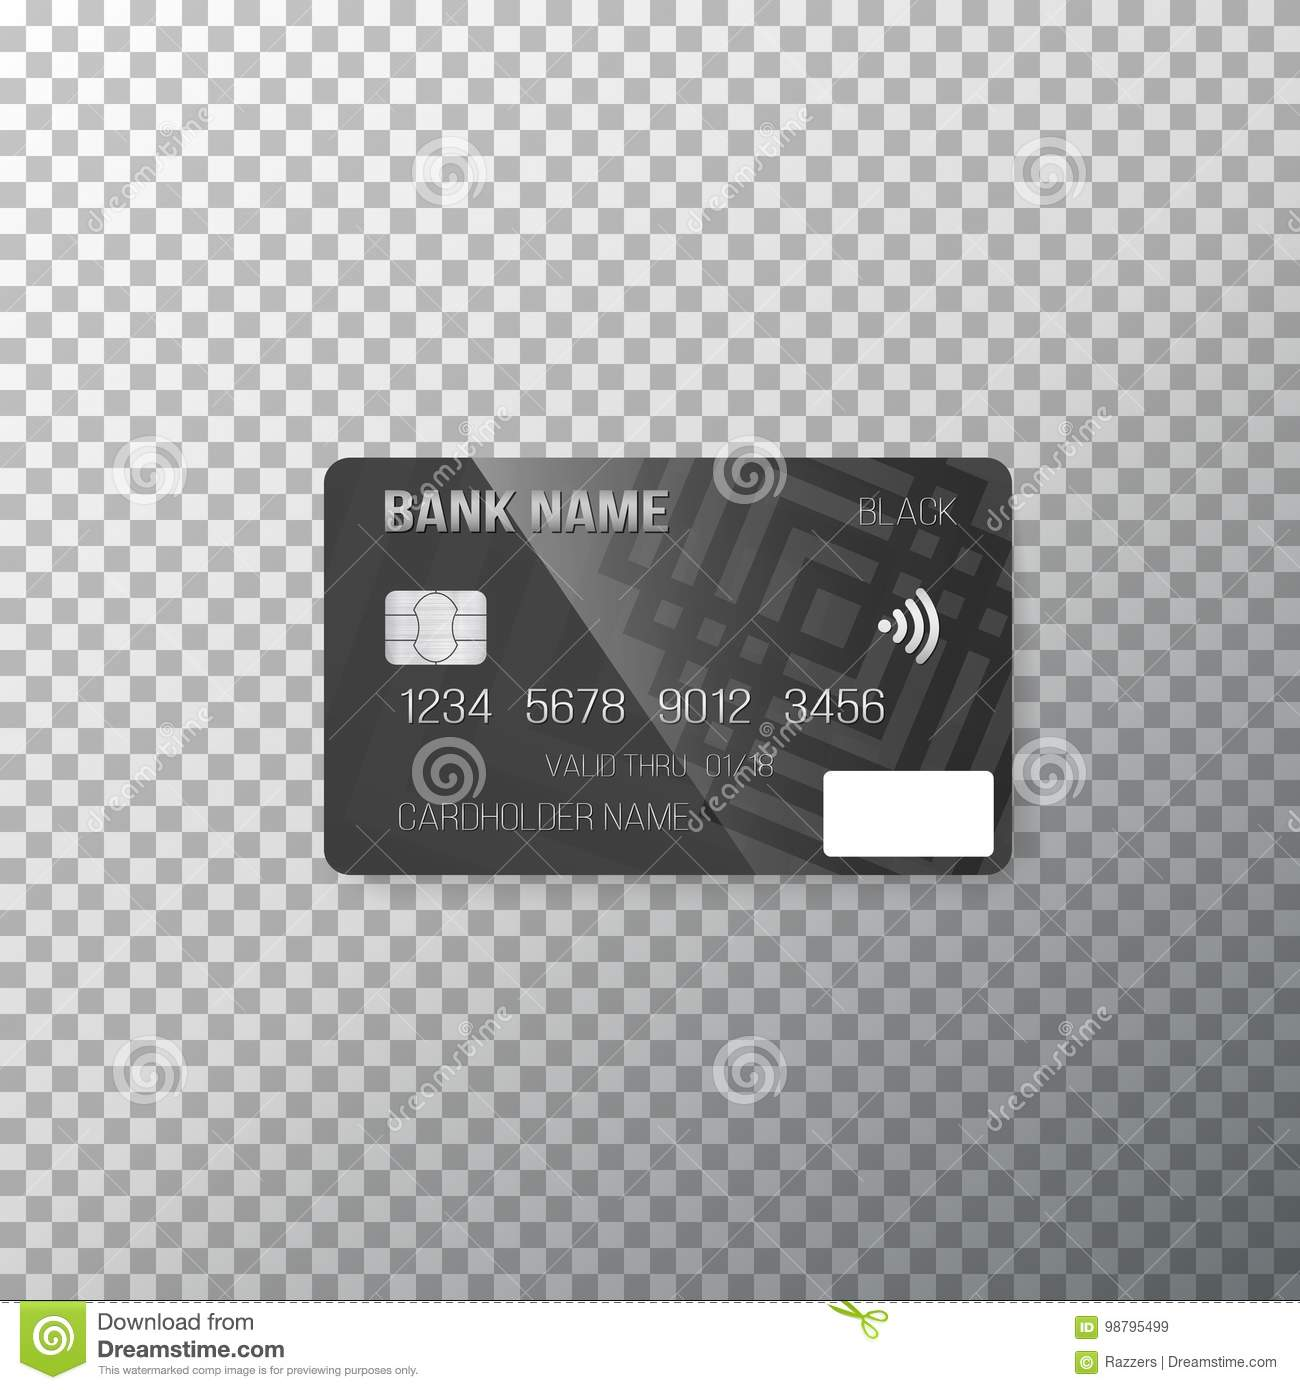 vector credit card photorealistic bank card on transparent